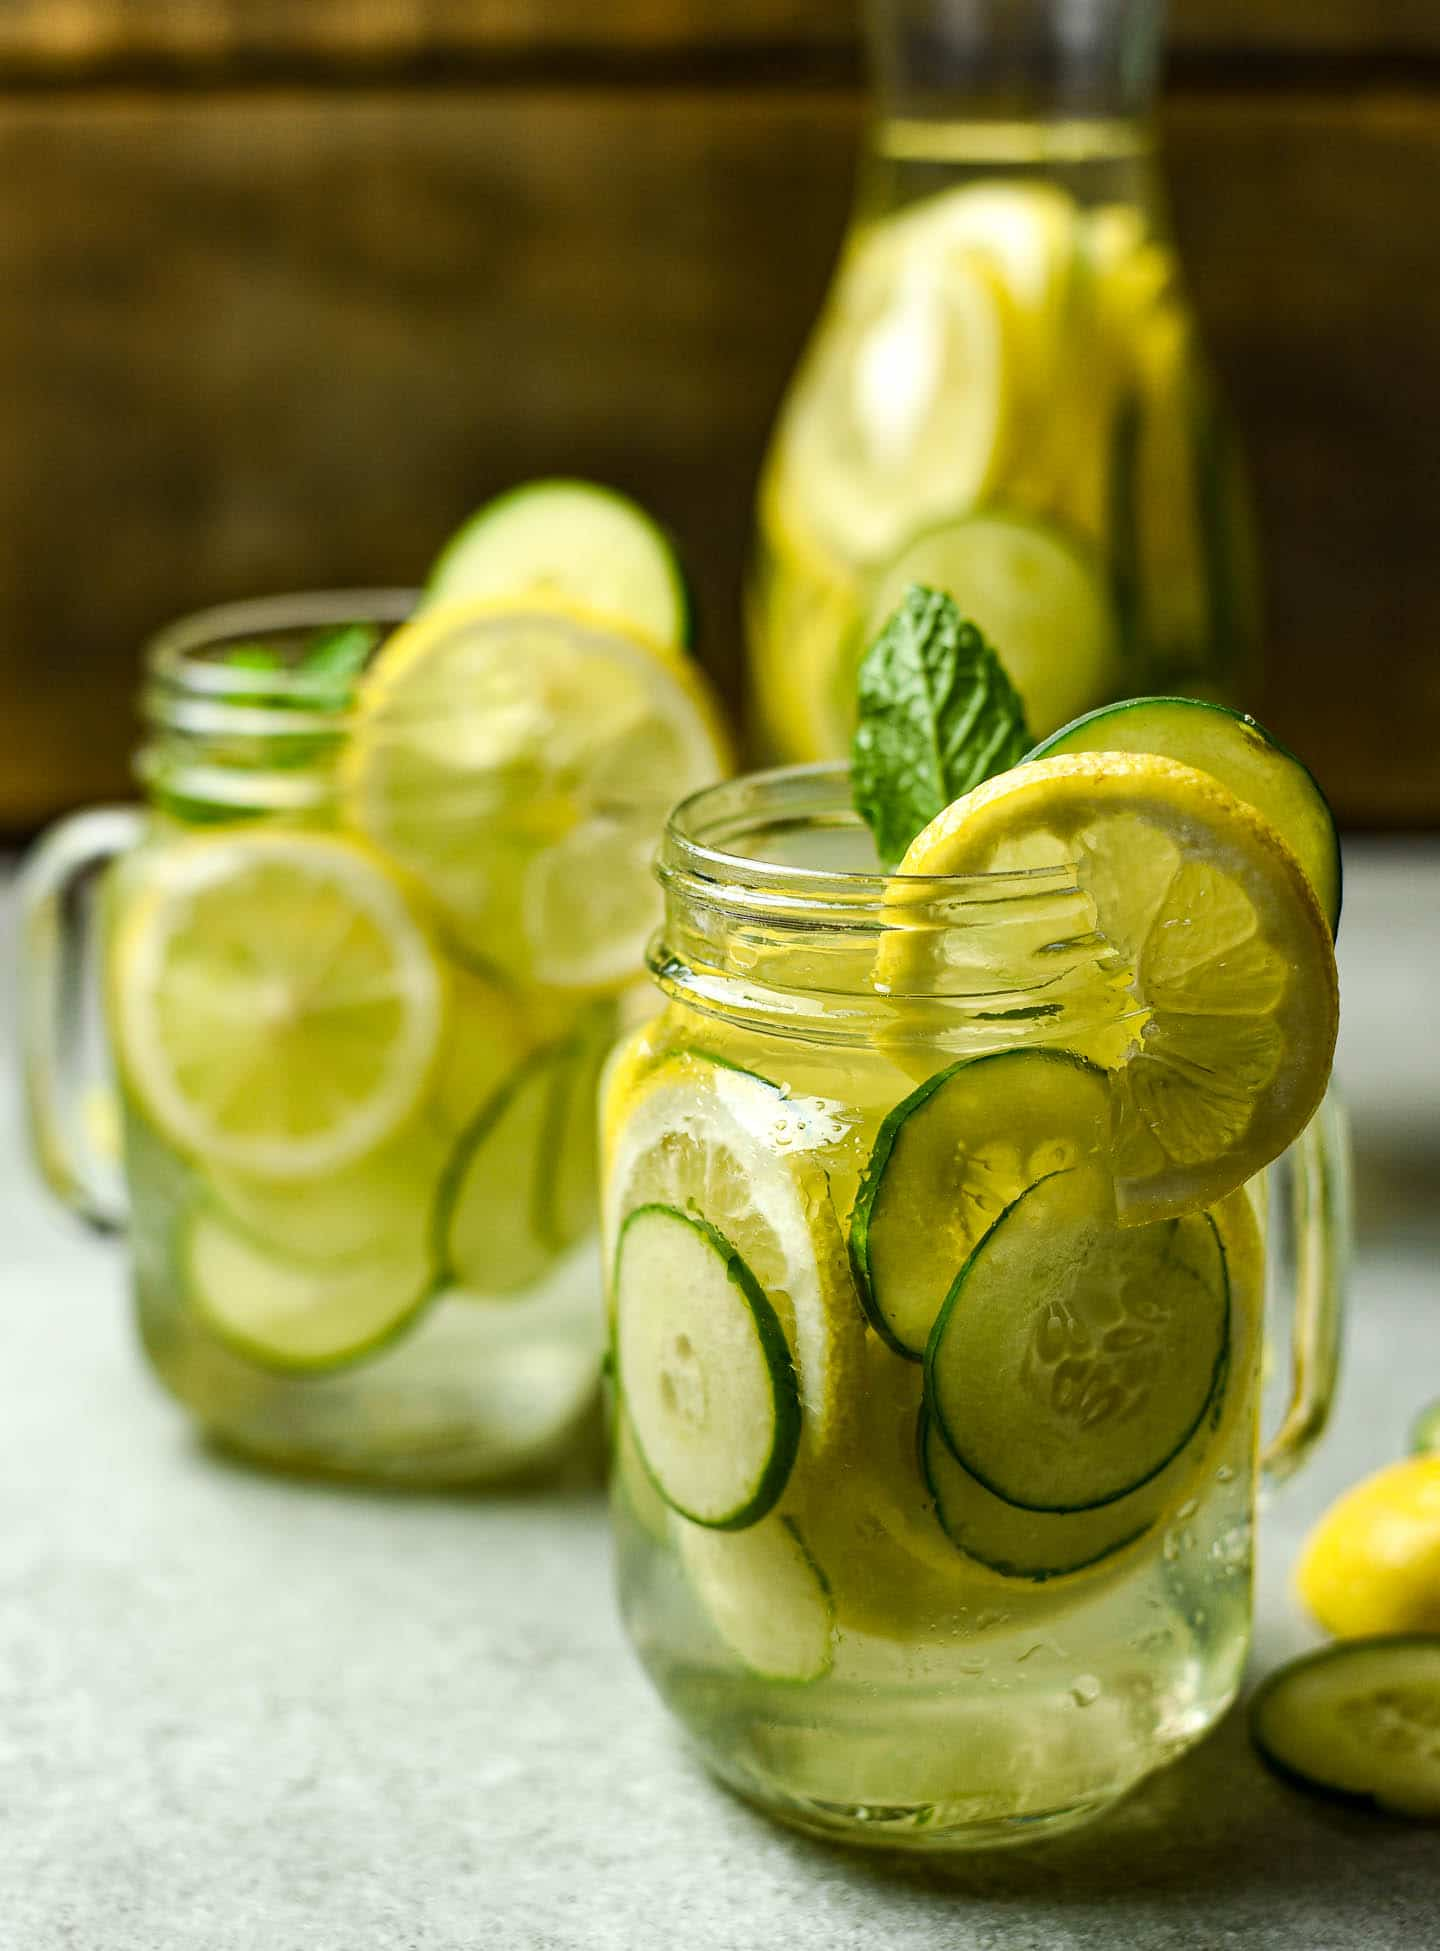 Deliciously refreshing lemon cucumber water made with only lemons, cucumbers, and water. Garnish with fresh mint or berries of your choice. Perfect day or night.